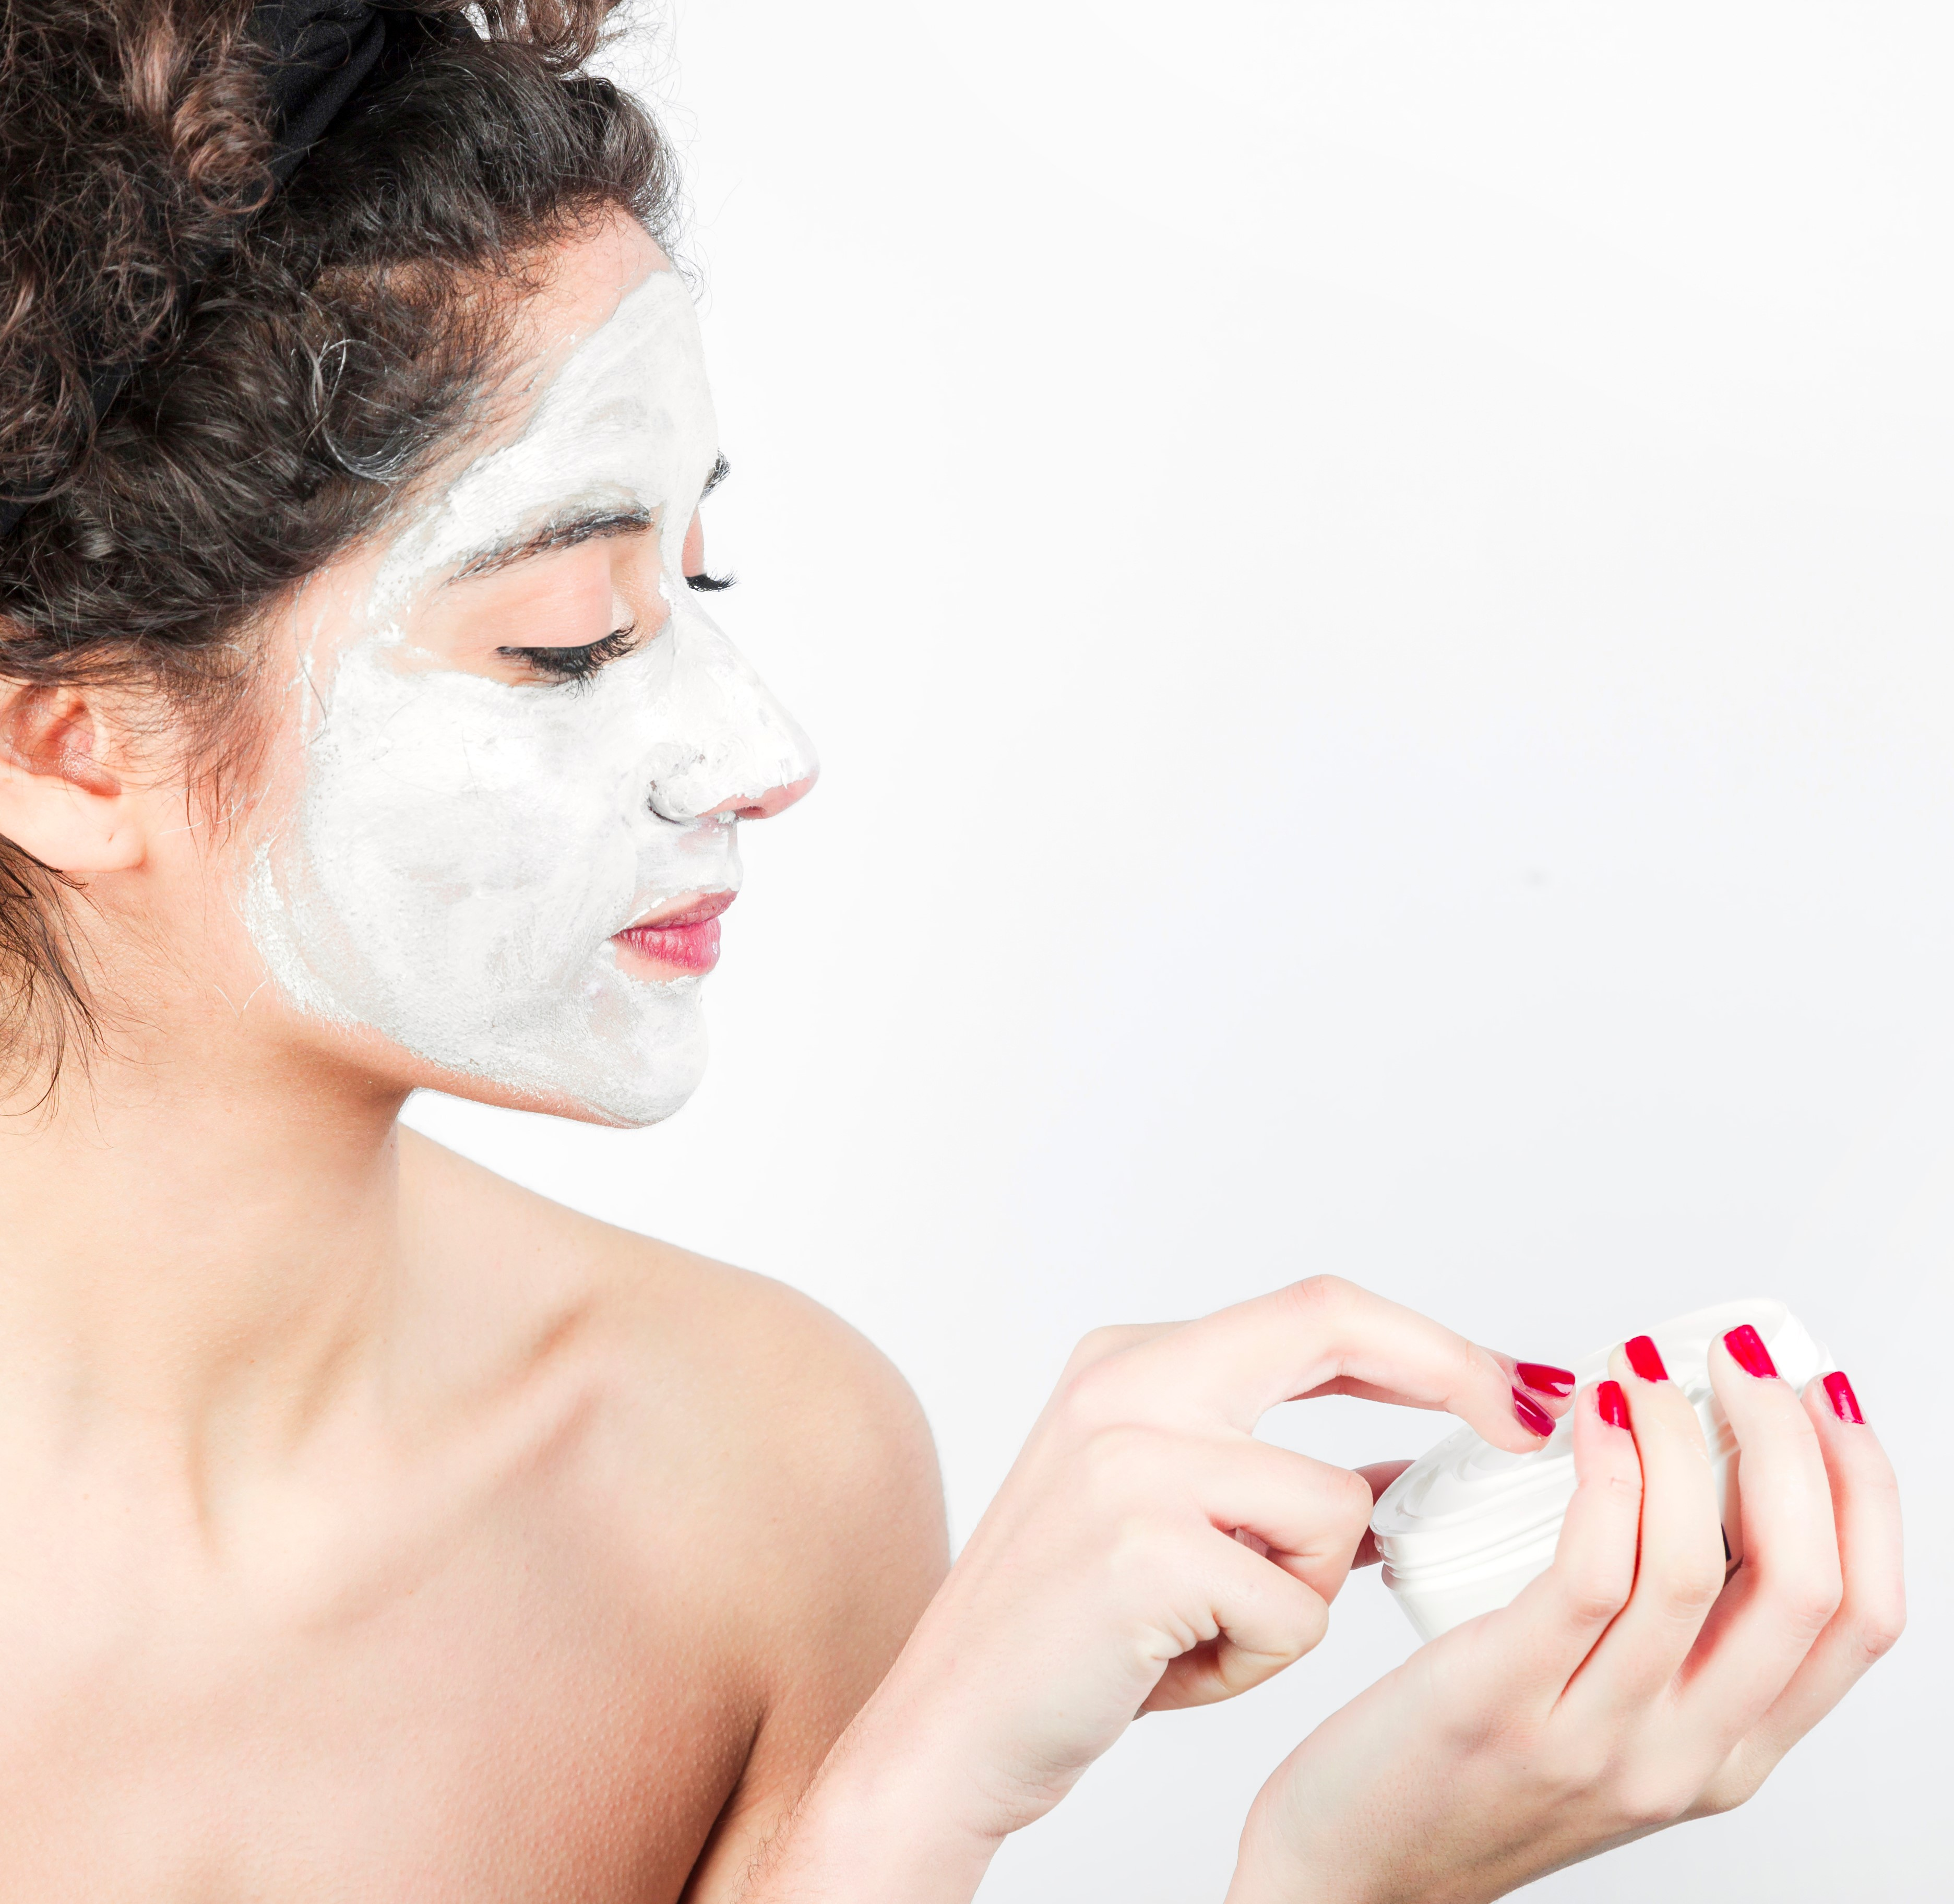 Top 5 Secrets to Lighten Your Skin Quickly That Really Work